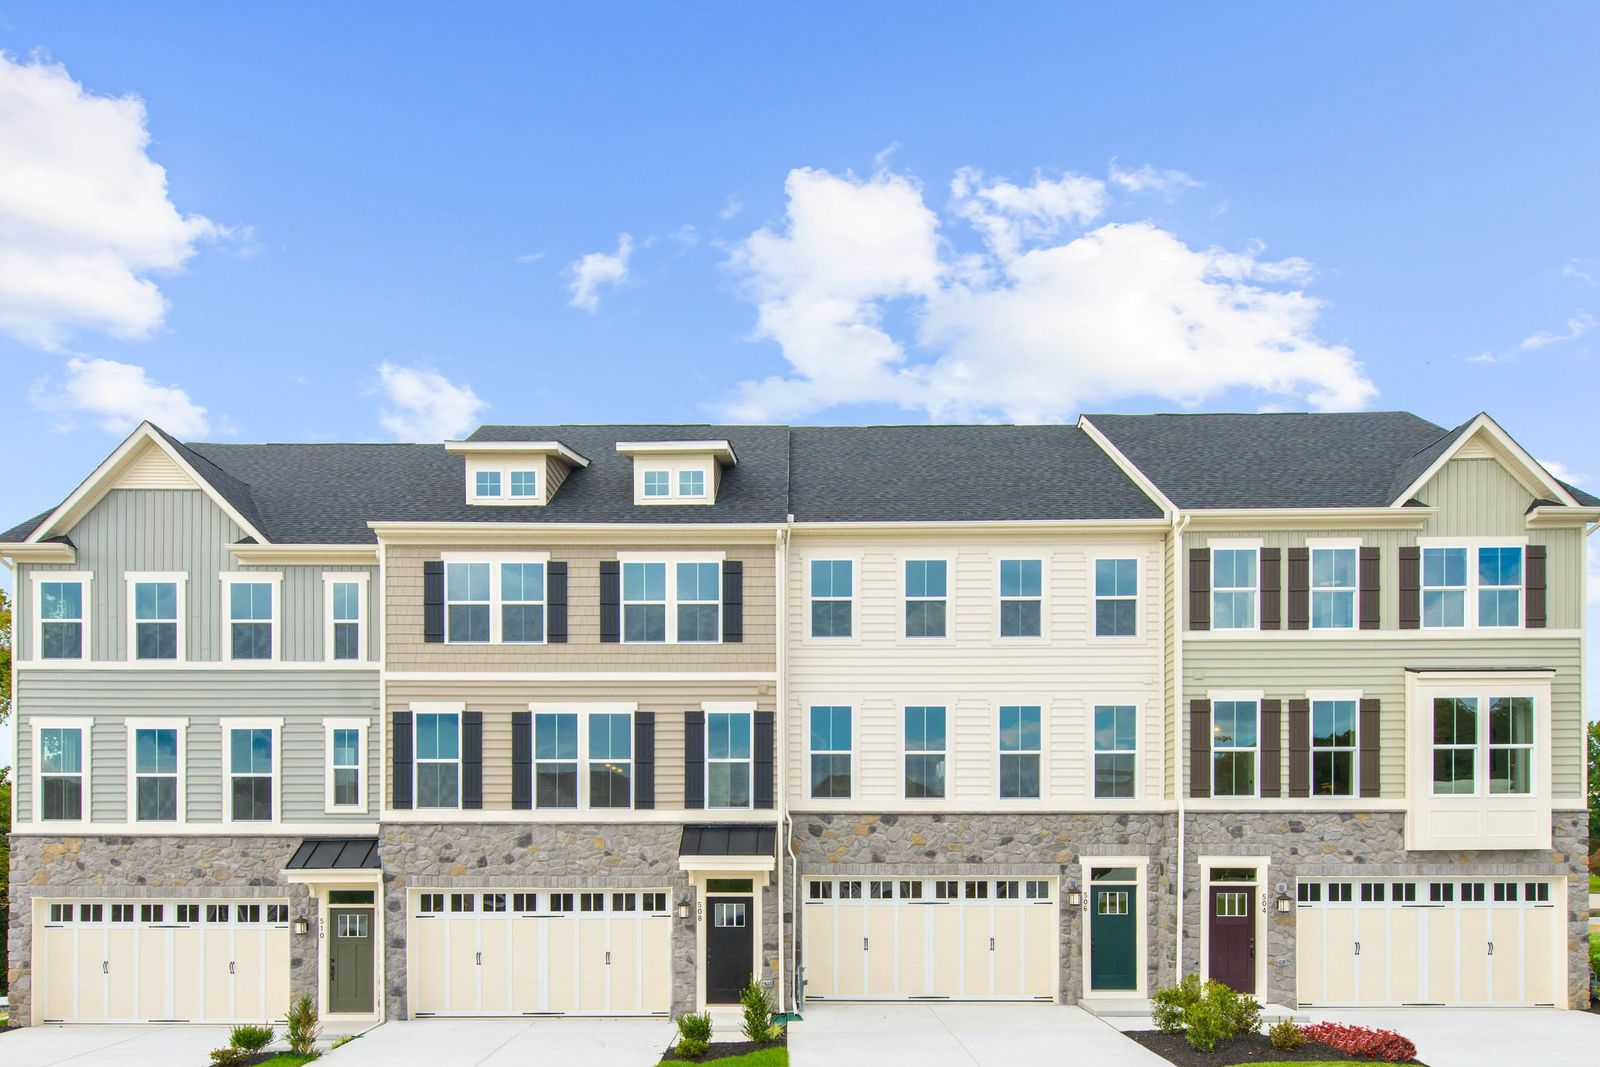 Welcome Home to The Reserve at Eagle Hill:The McPherson townhome featuring a 2-car garage, open floorplan with 3-4 bedrooms and 2.5-3.5 bathrooms, 2nd floor laundry, walk-in closet & gourmet kitchen. Click here to schedule an appointment.